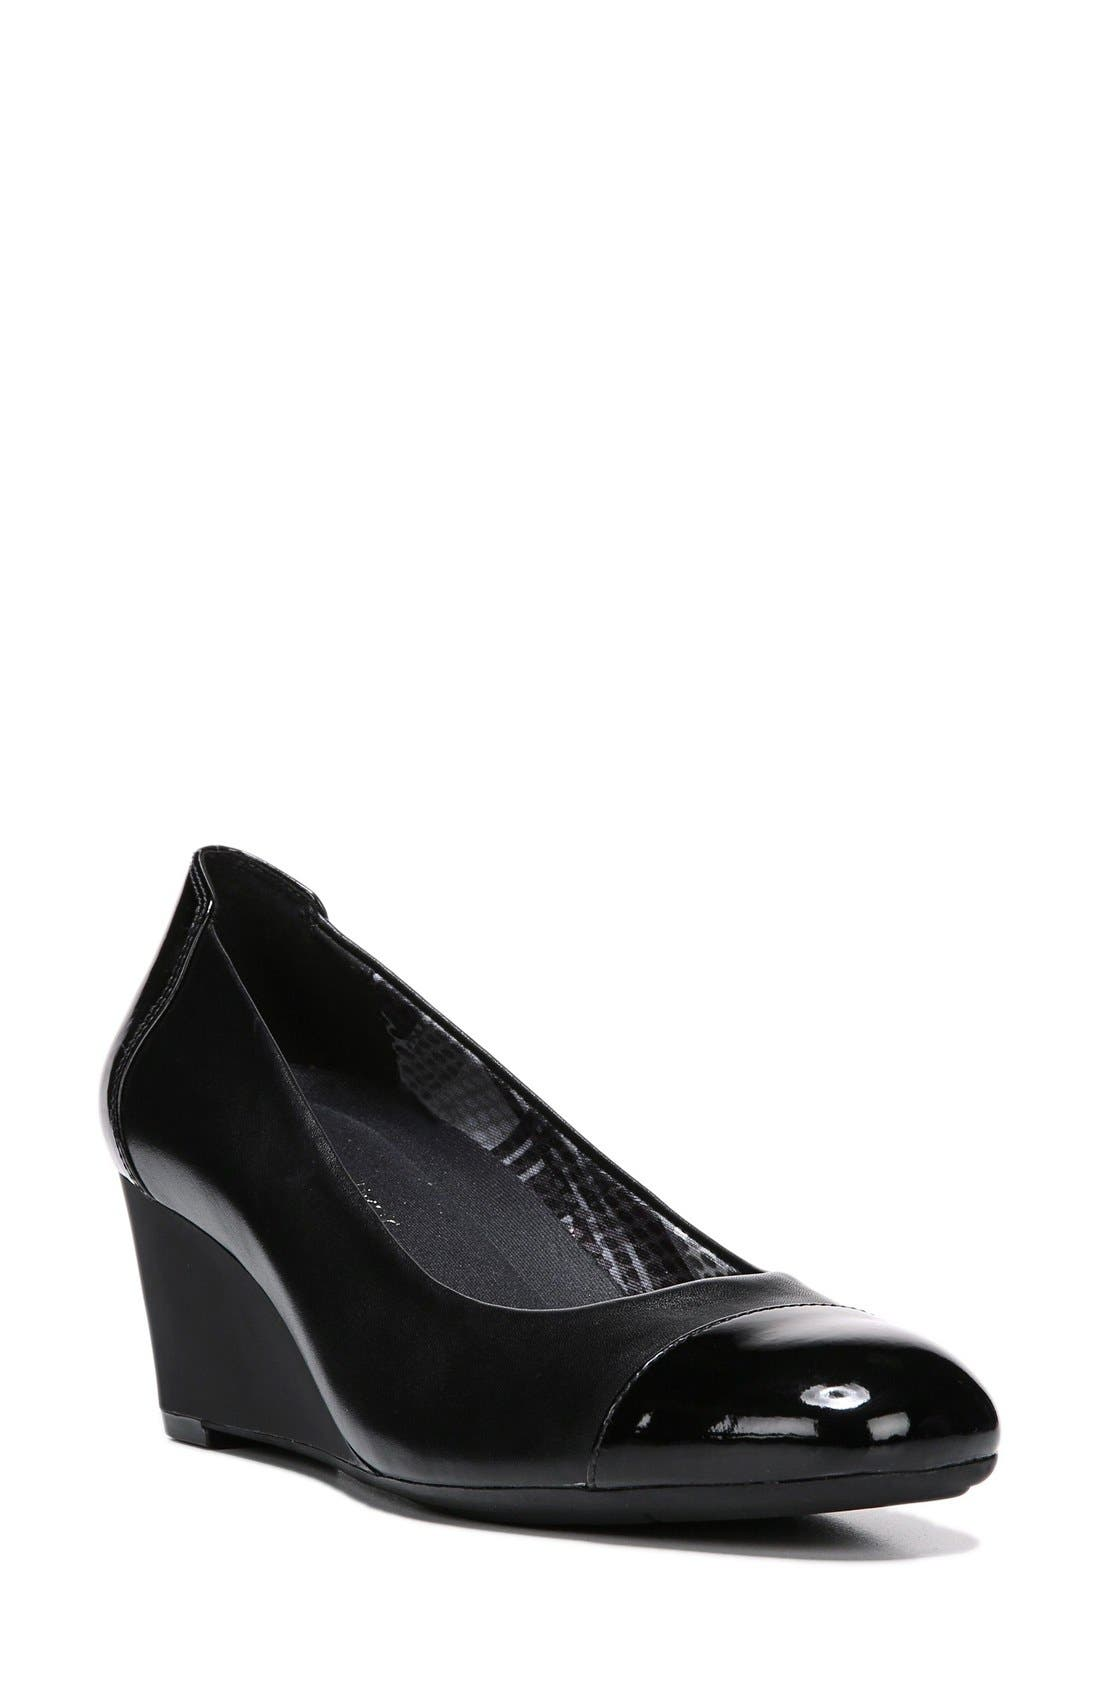 'Necile' Wedge Pump,                         Main,                         color, Black Leather